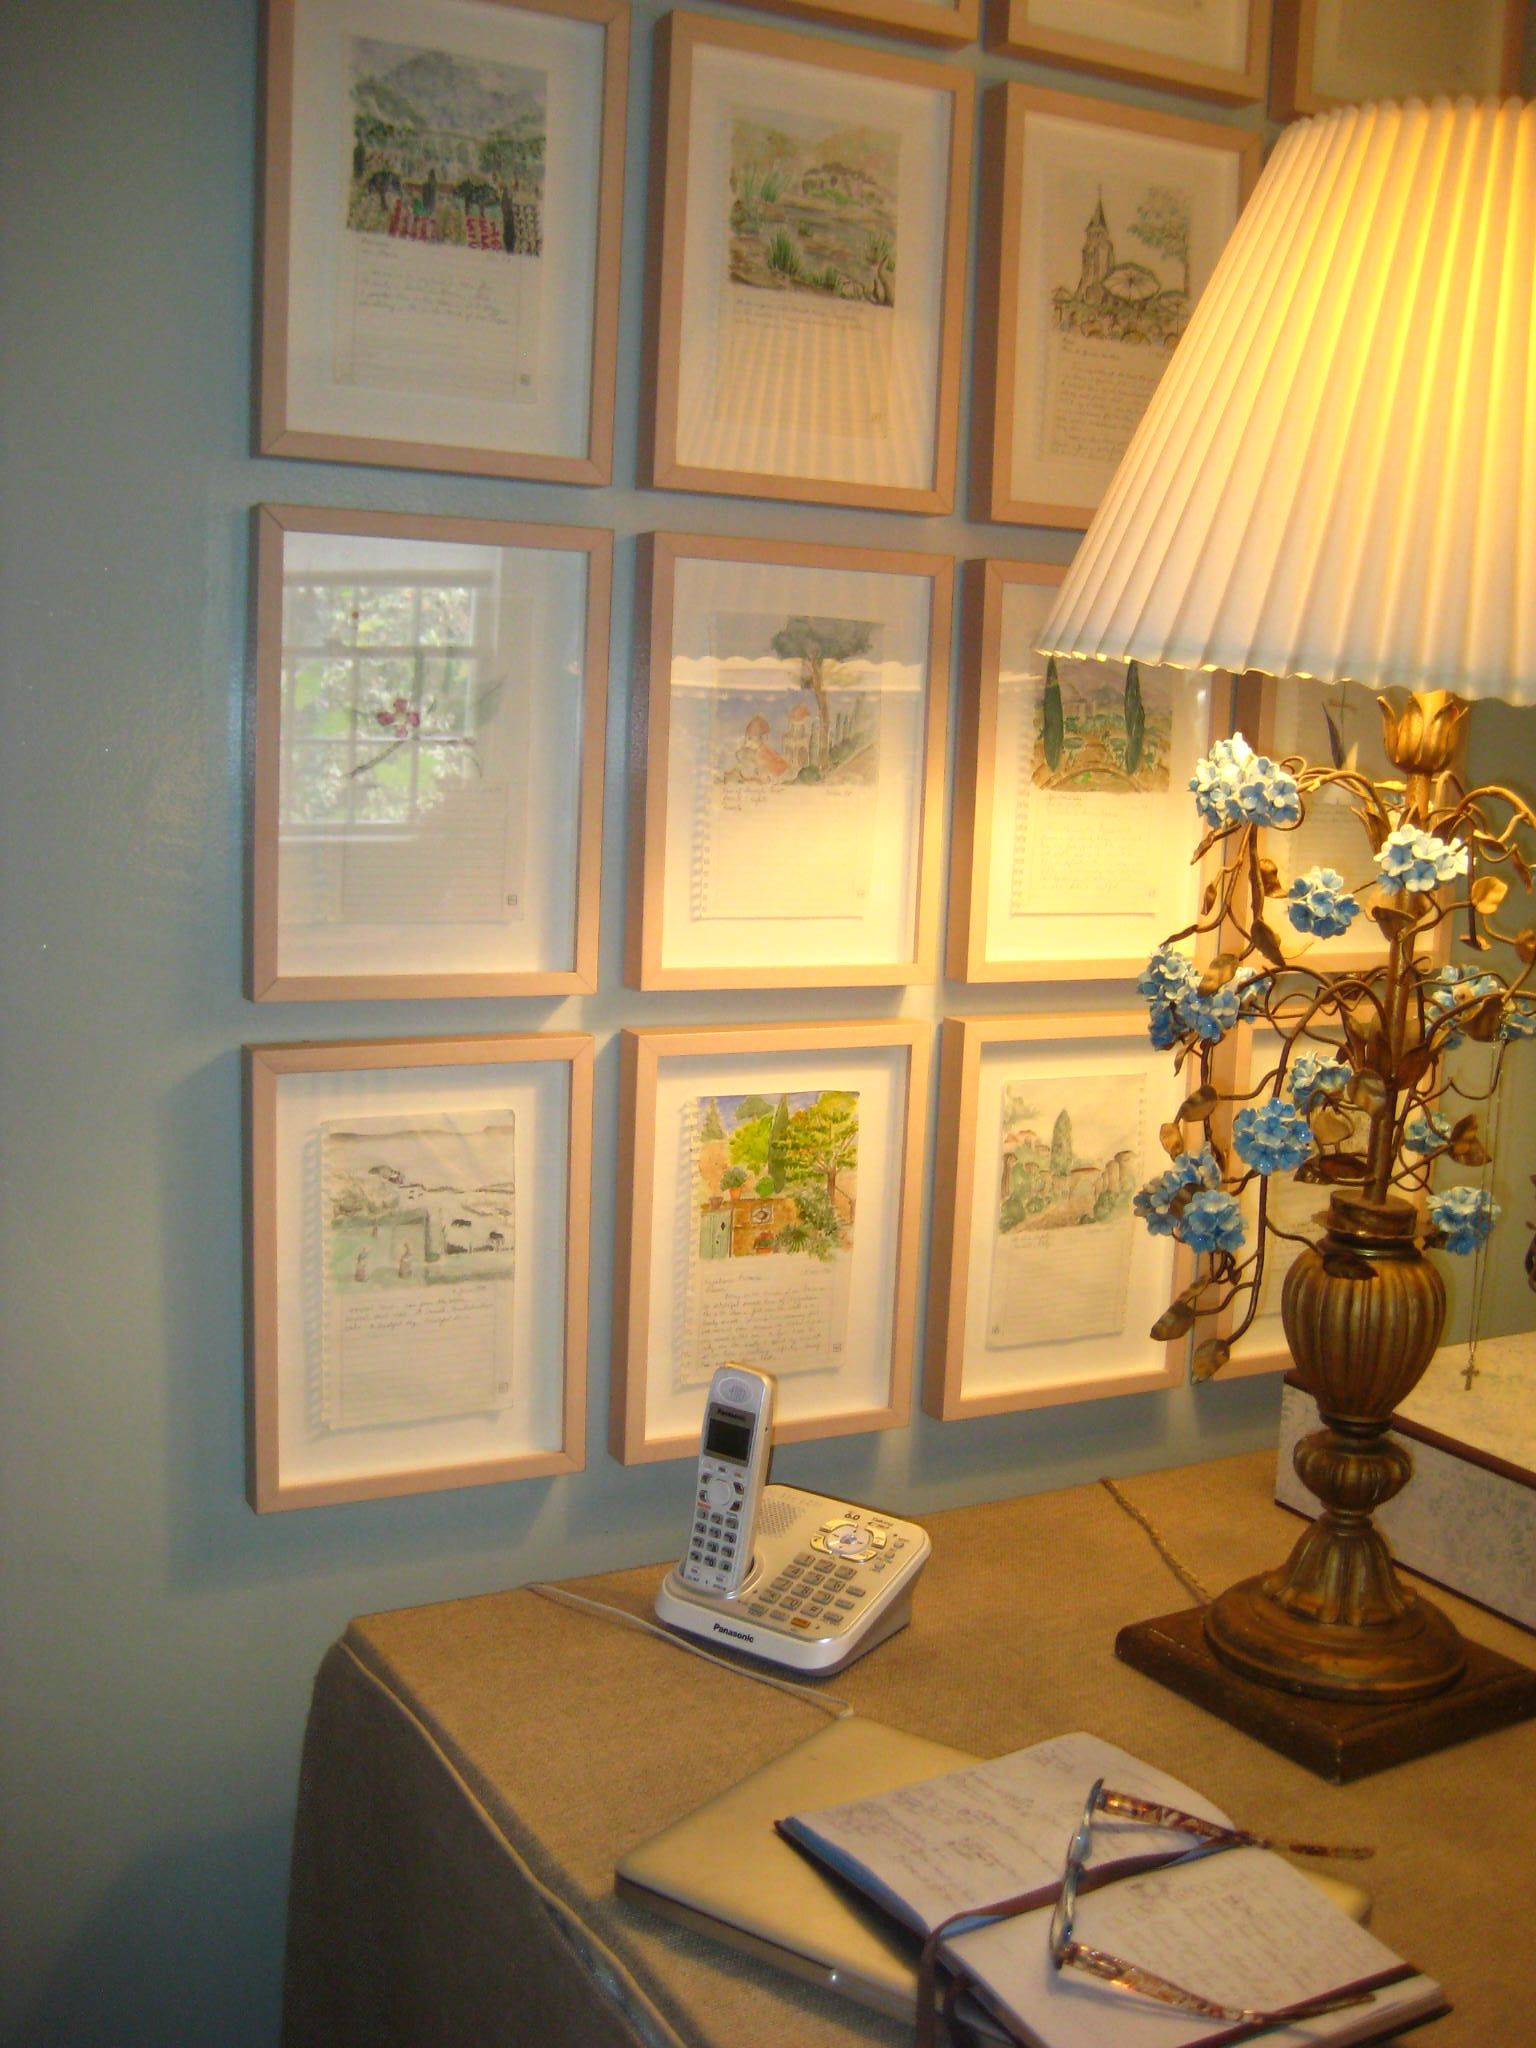 A group of framed pages from a travel sketchbook makes a charming display and forms the impression of a window. Bee Cottage, via FrancesSchultz.com